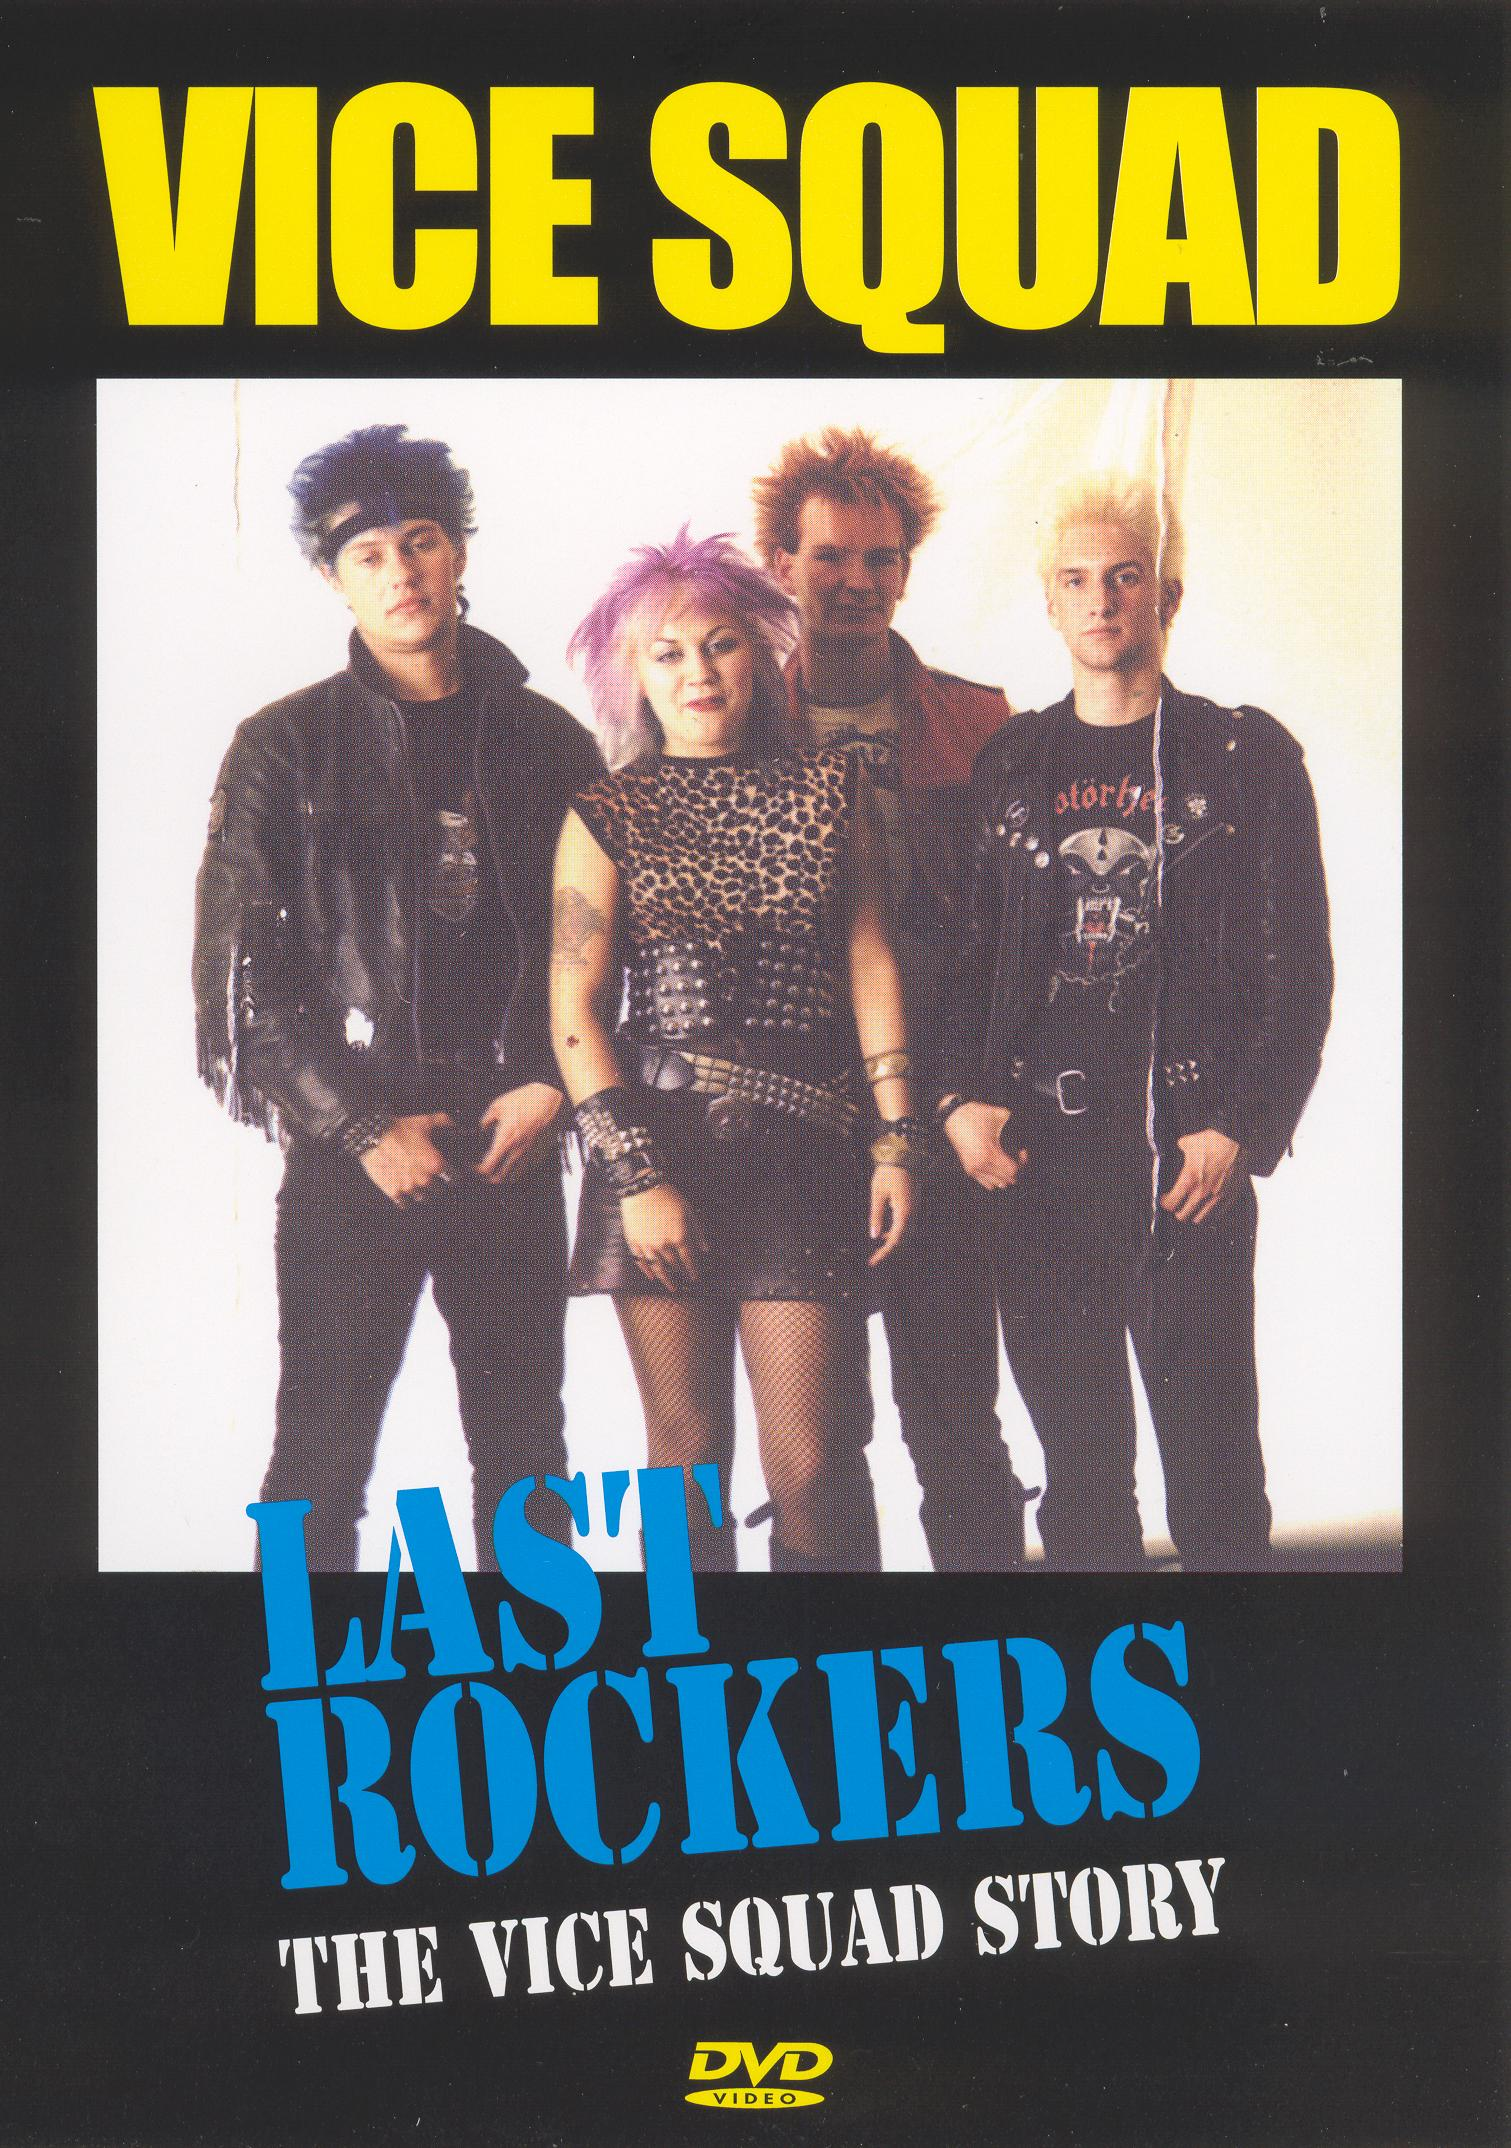 Vice Squad: Last Rockers - The Vice Squad Story